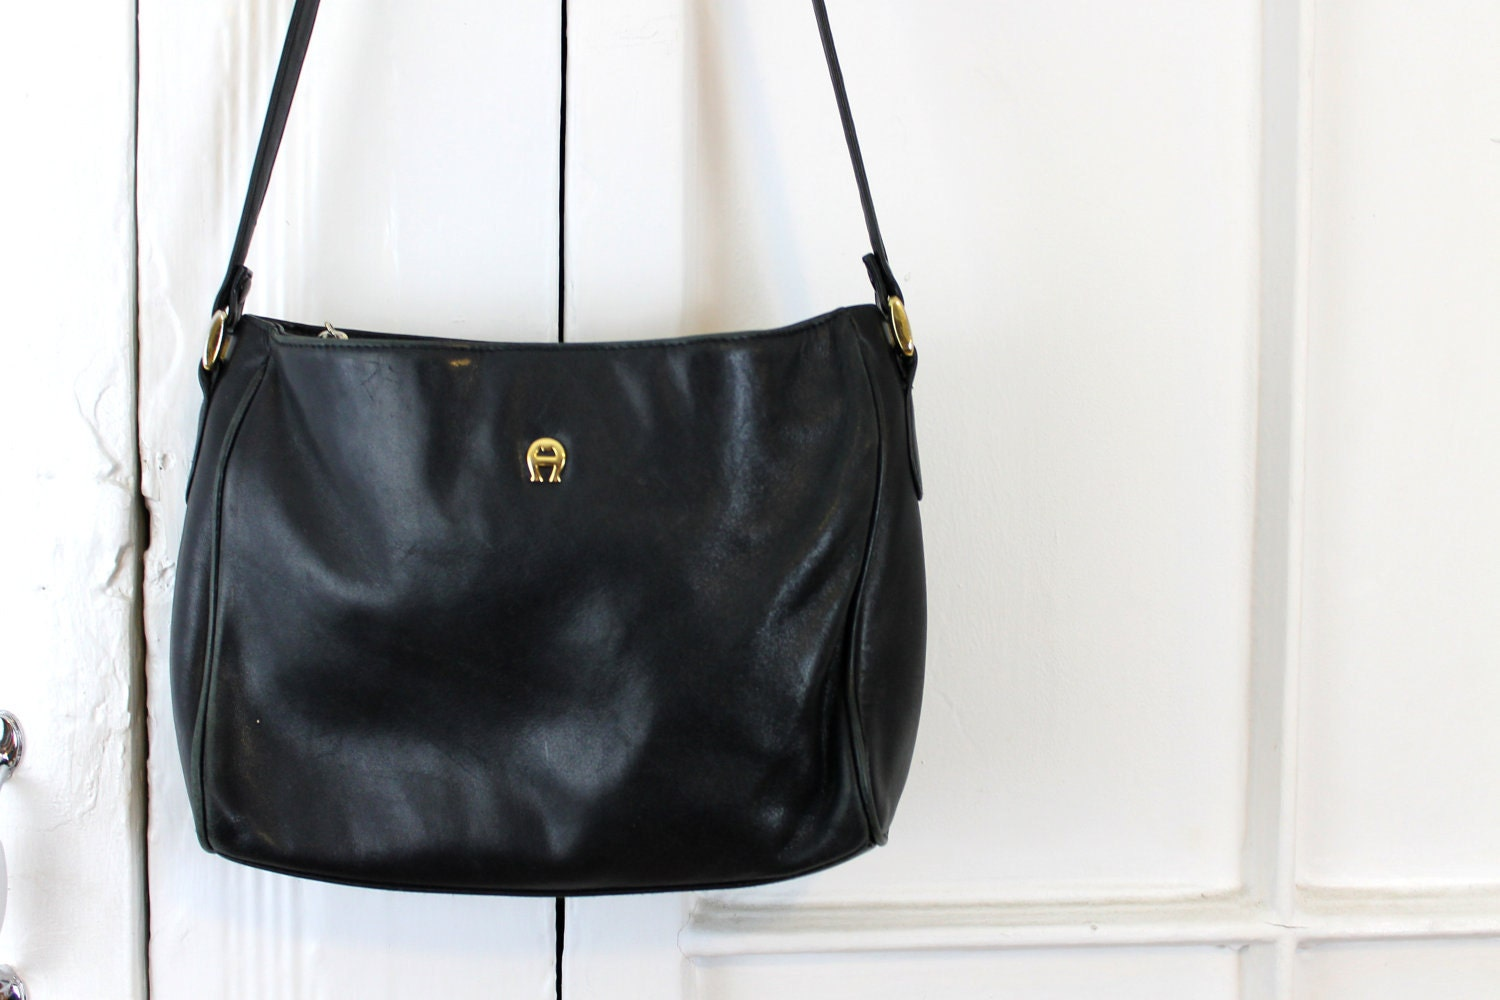 33a2eee31dd3 black-leather-purses-rocker-style.html in unowadopewo.github.com | source  code search engine